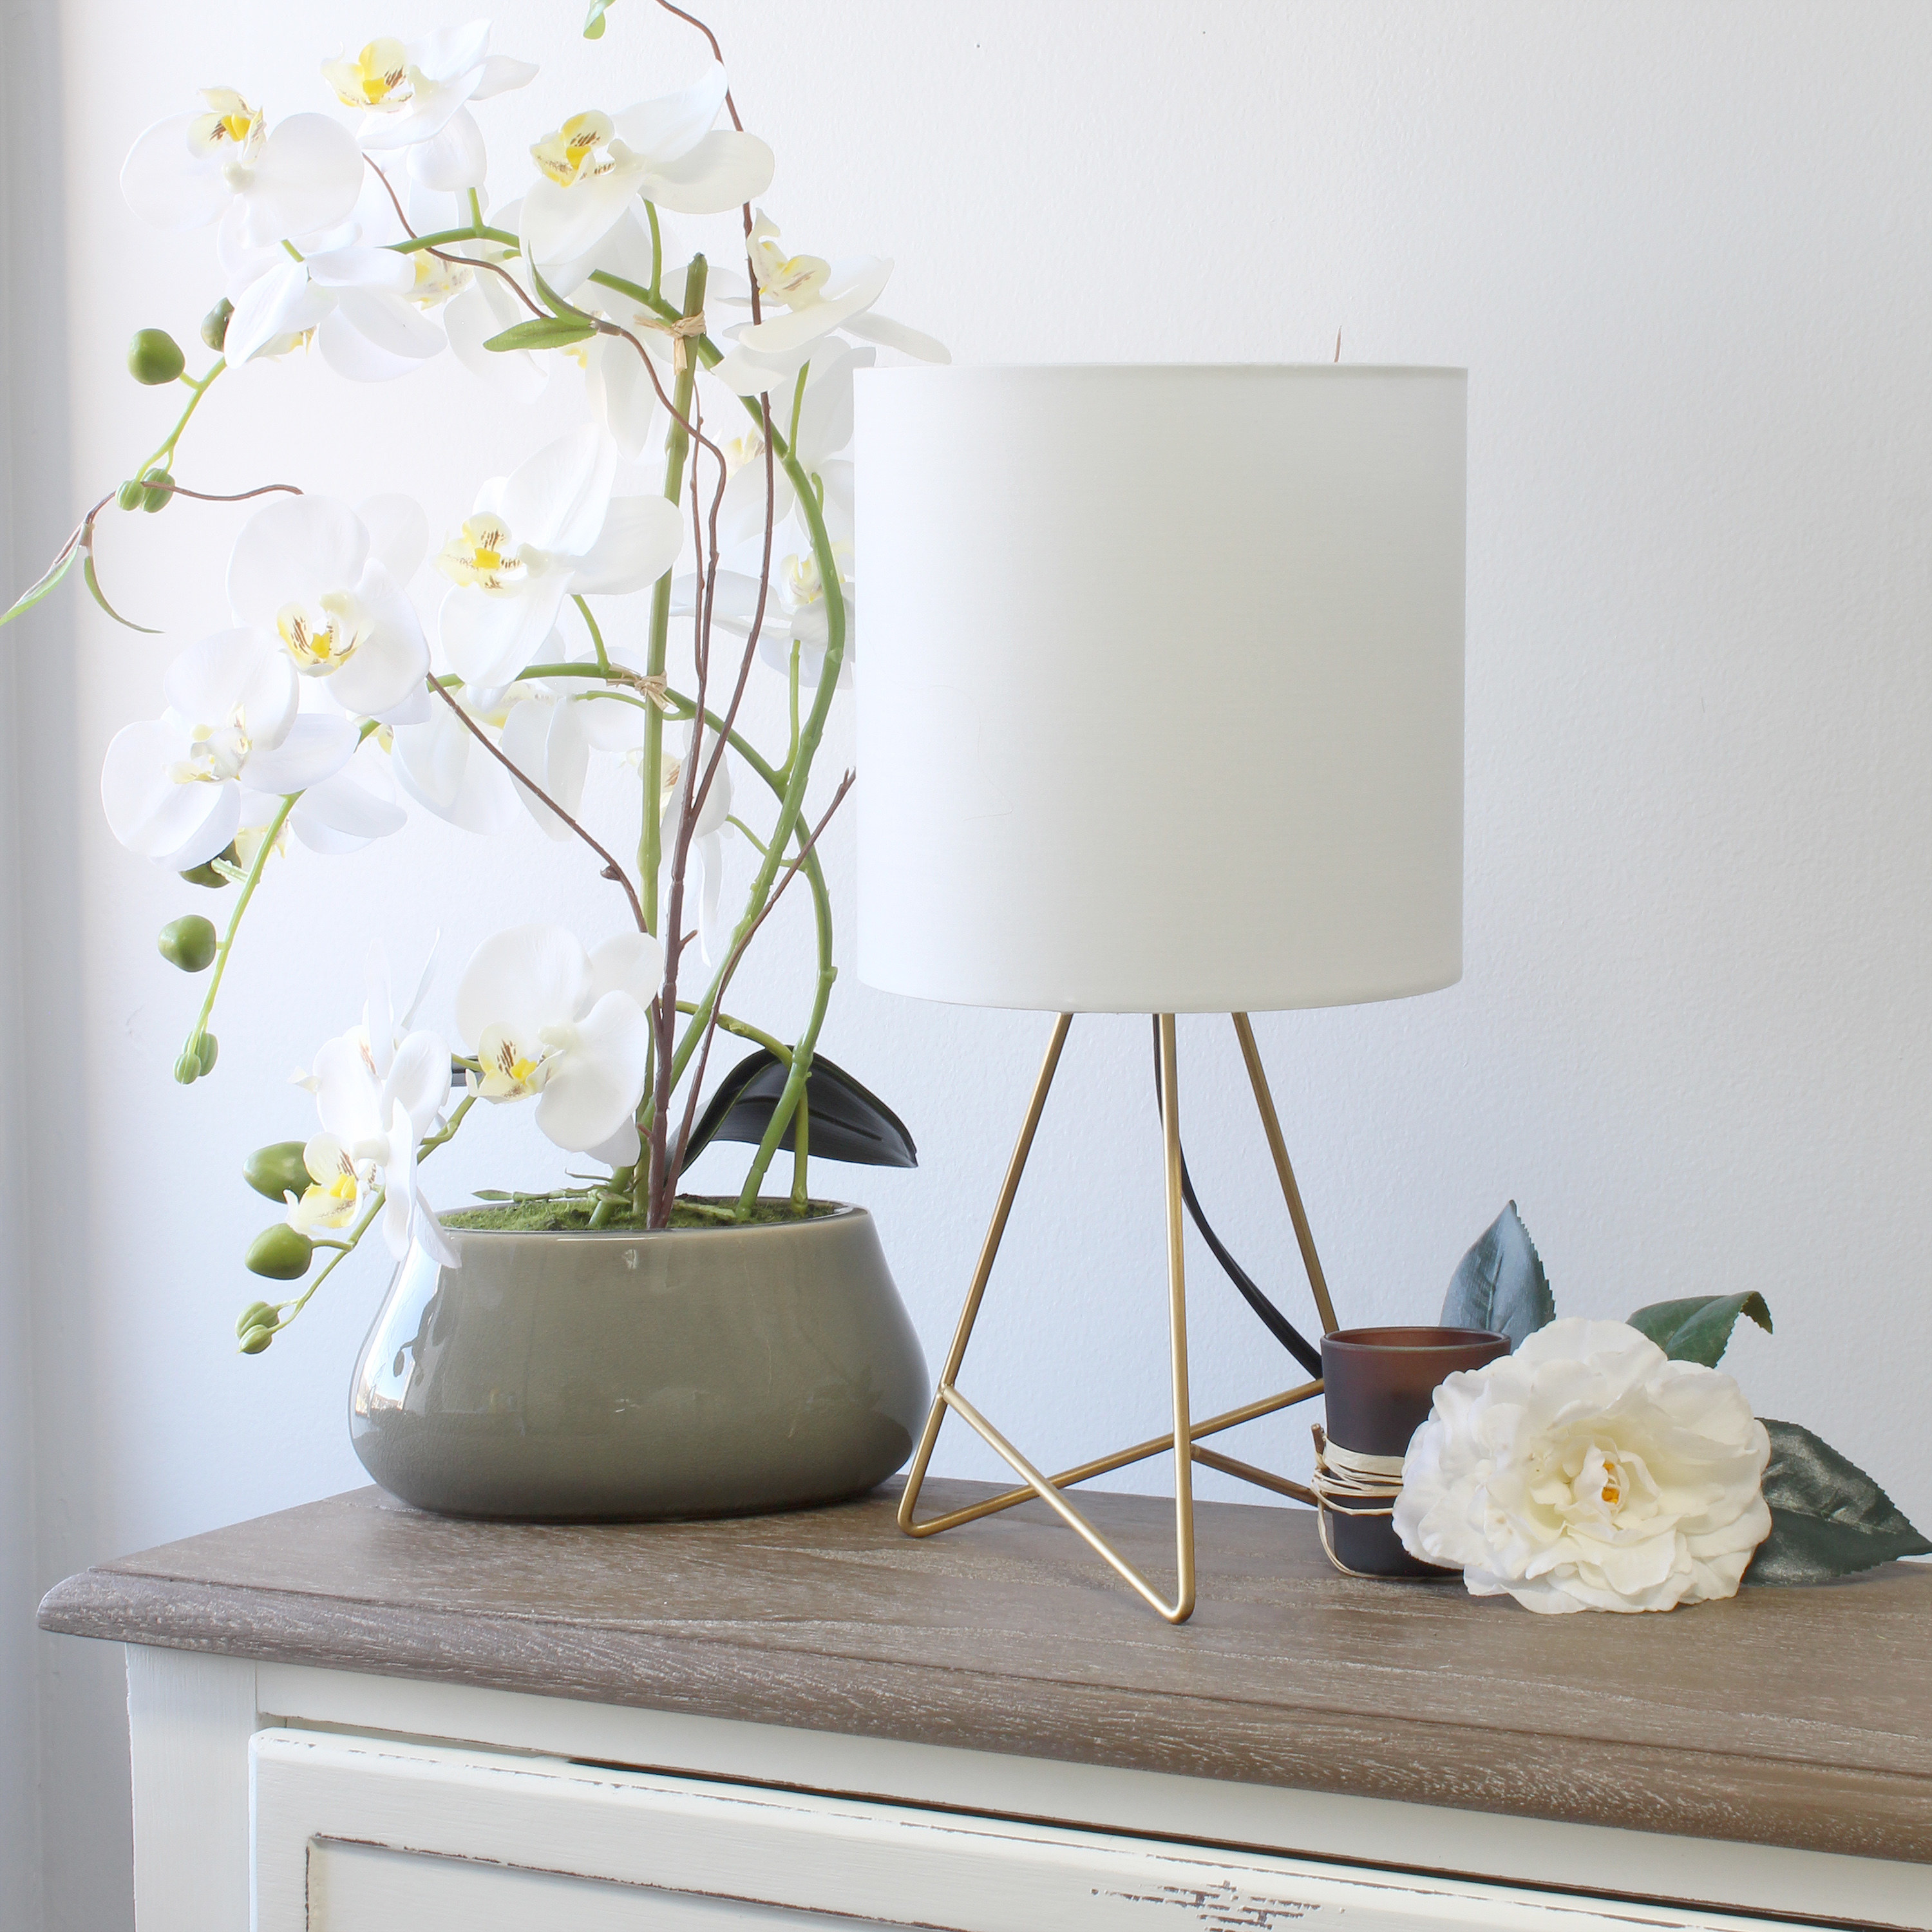 The lamp, which has a white drum shade and a base comprised of two triangular wire panels